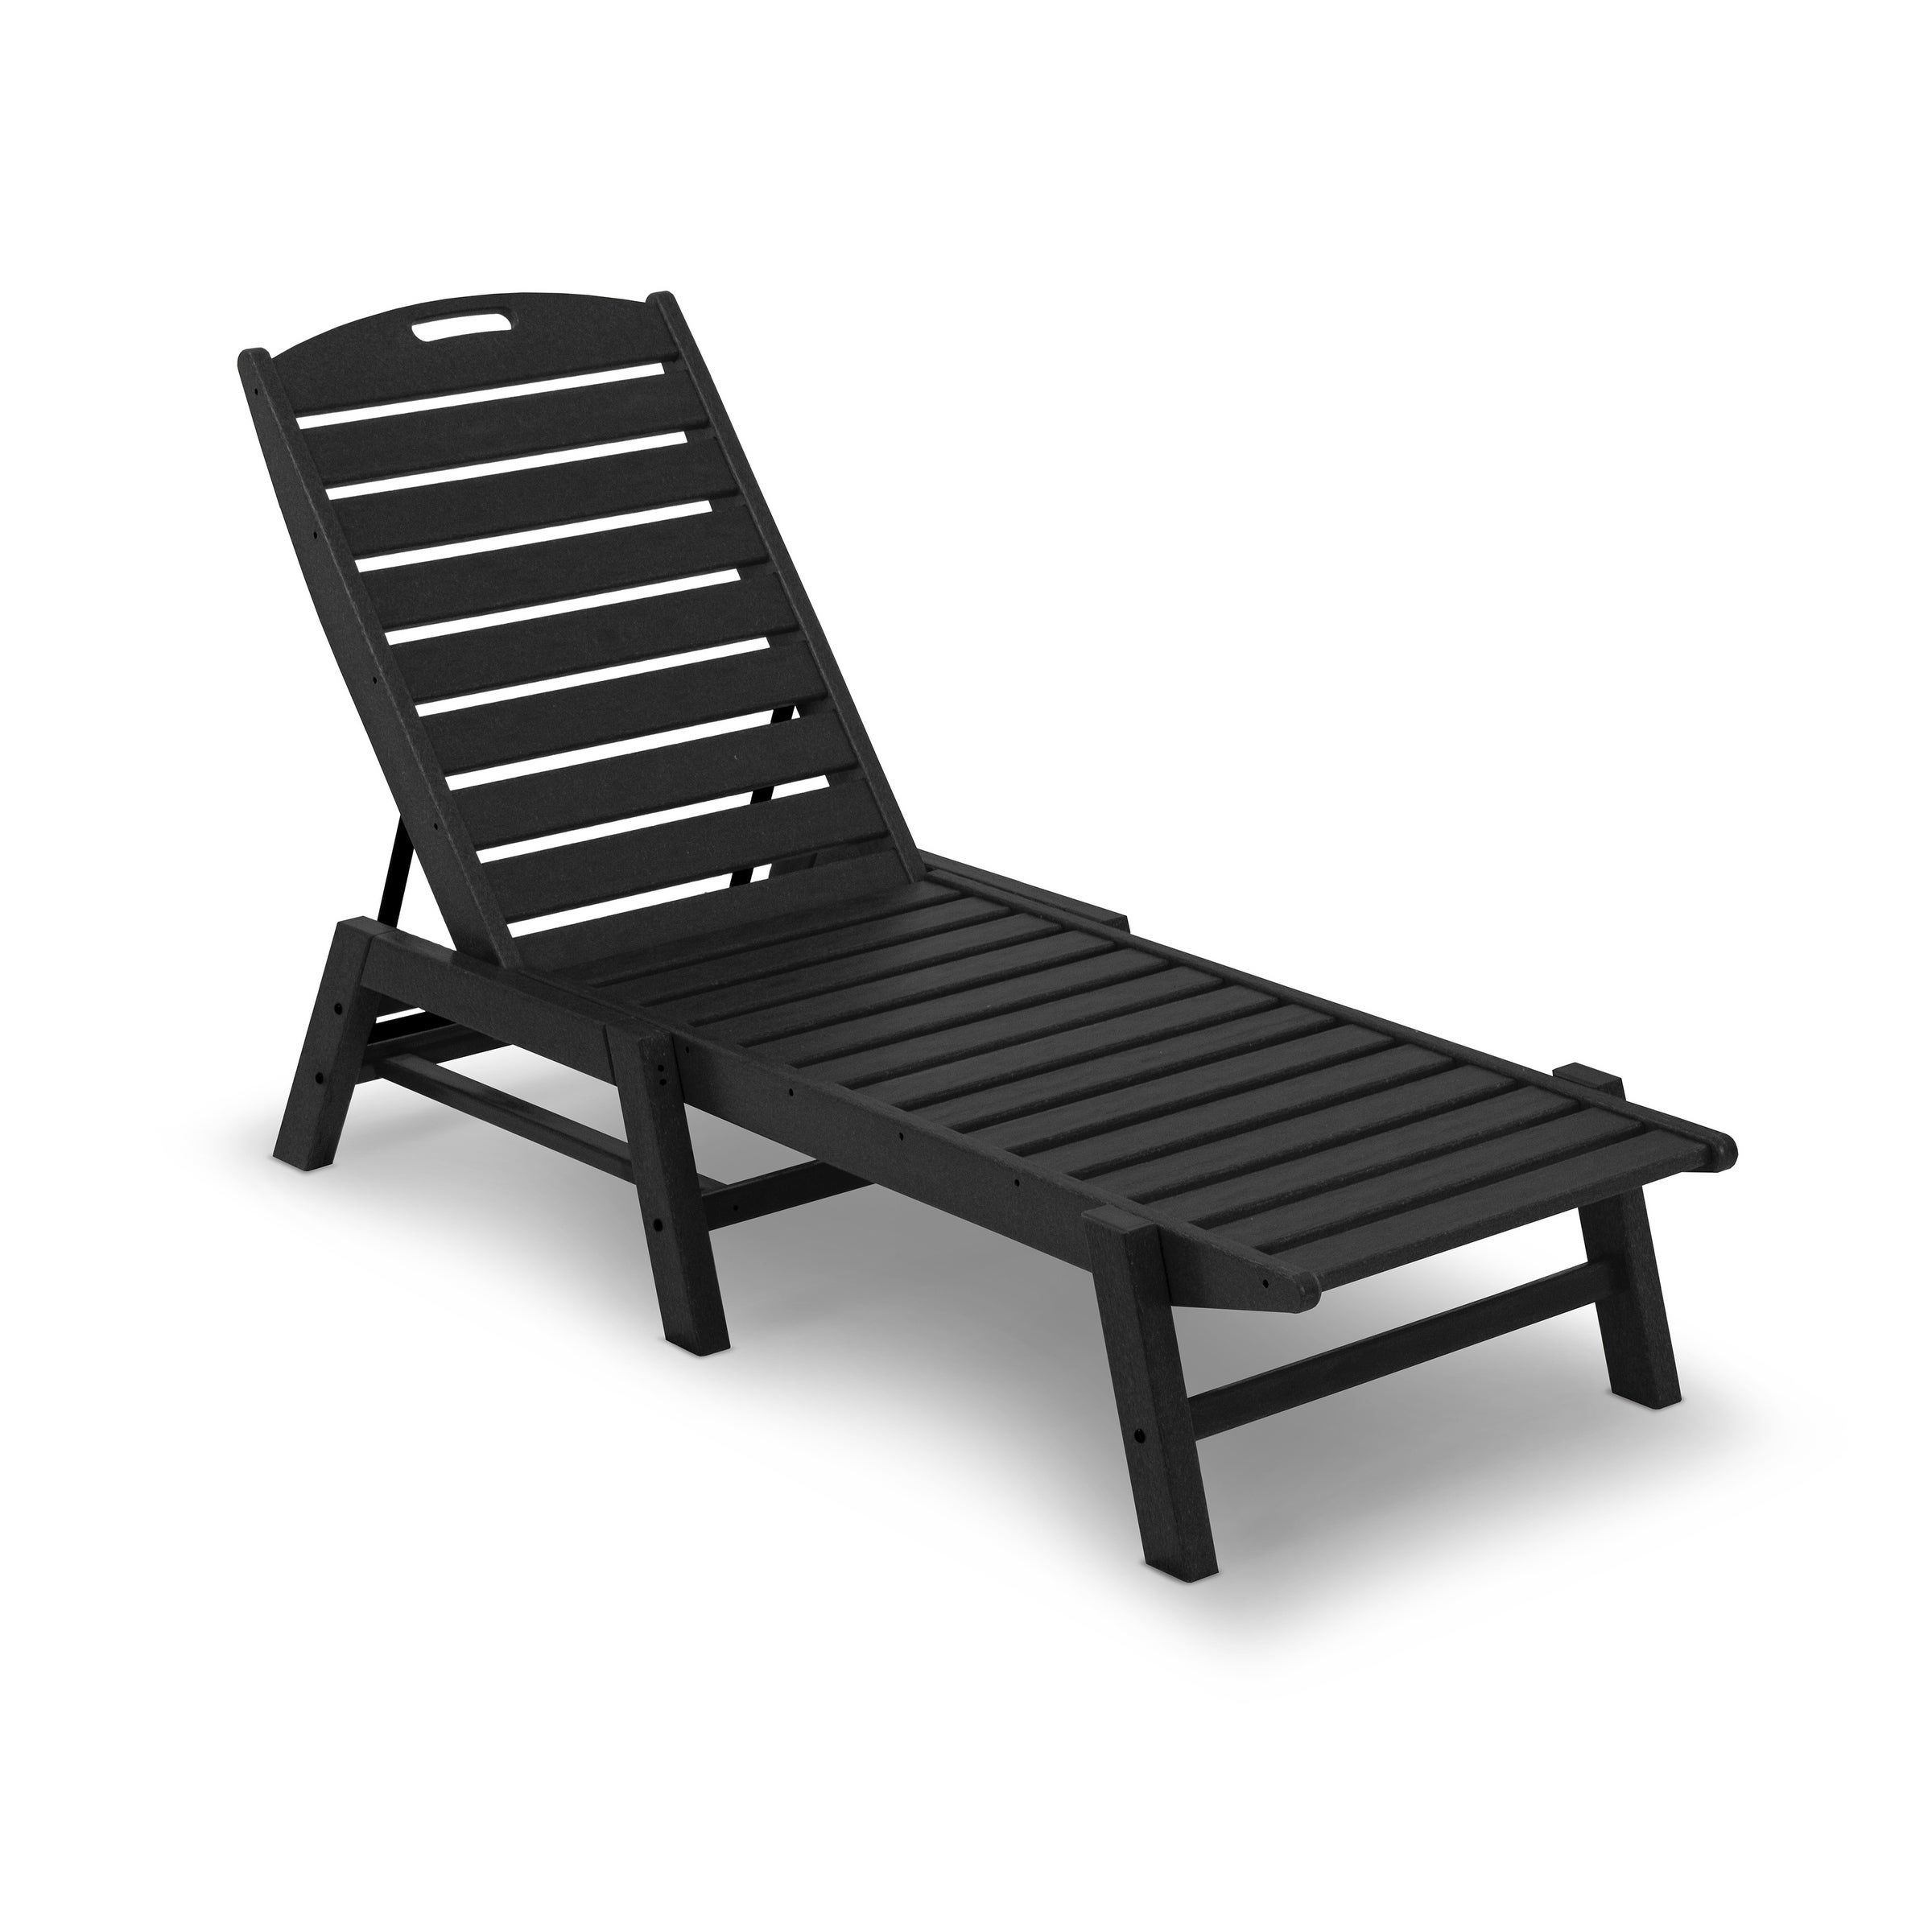 Polywood® Nautical Outdoor Chaise Lounge, Stackable With Regard To Current Stackable Nautical Outdoor Chaise Lounges (View 14 of 25)